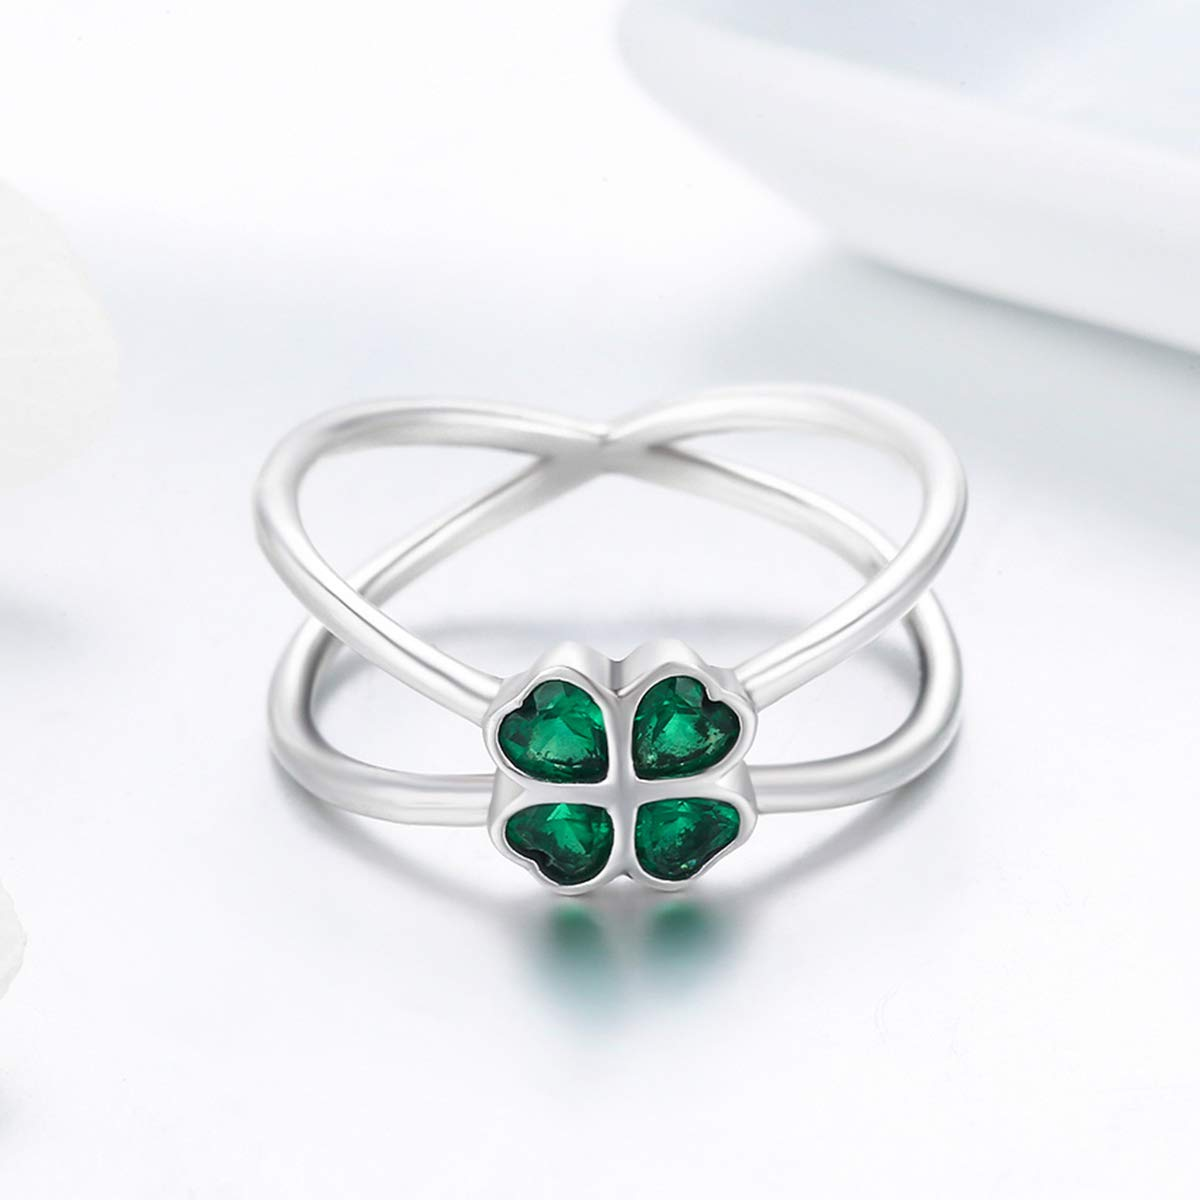 The Kiss Lucky Green Clover Flower 925 Sterling Silver Ring Green CZ